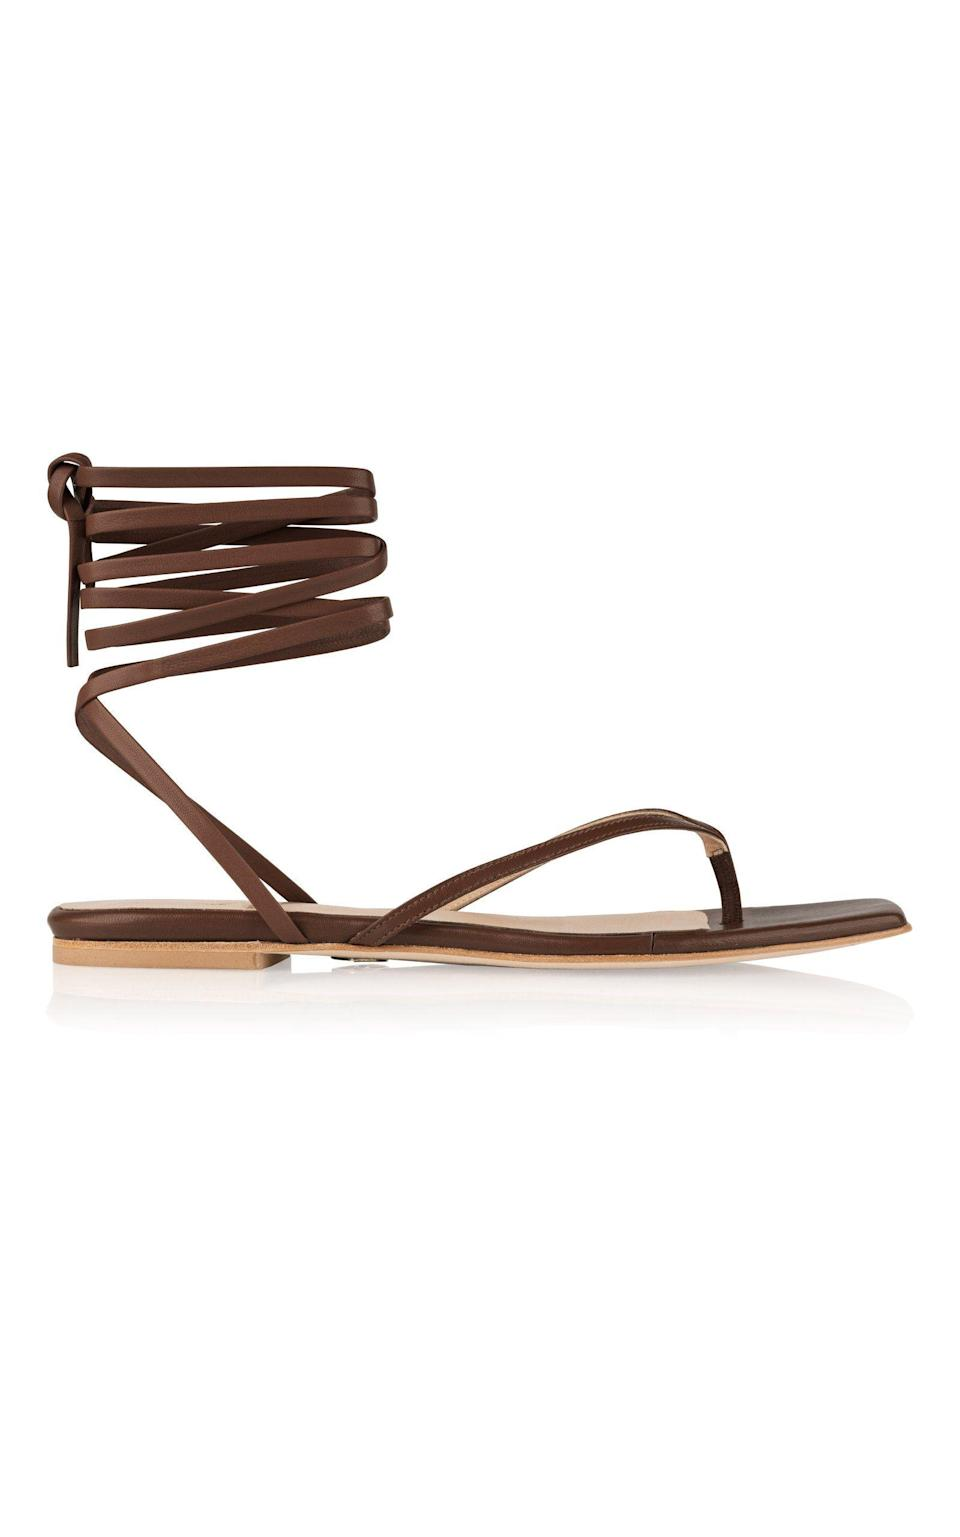 """<p><strong>Brother Vellies </strong></p><p>brothervellies.com</p><p><strong>$385.00</strong></p><p><a href=""""https://brothervellies.com/products/tyla-sandal-in-nina"""" rel=""""nofollow noopener"""" target=""""_blank"""" data-ylk=""""slk:Shop Now"""" class=""""link rapid-noclick-resp"""">Shop Now</a></p><p>A summer staple lace-up sandal to add to her permanent shoe collection. </p>"""